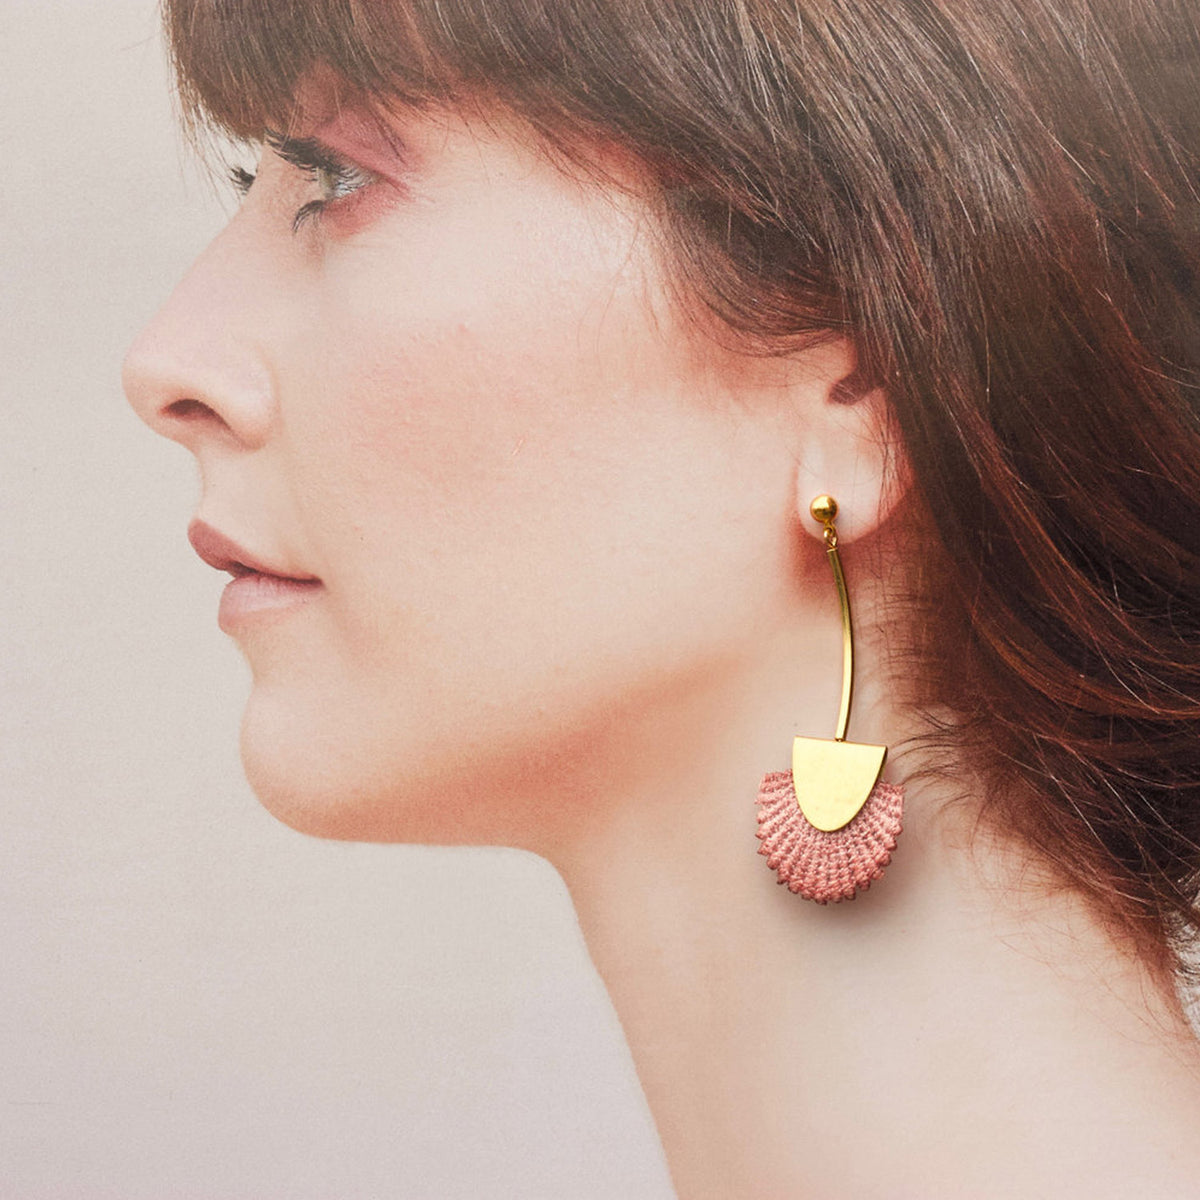 Model Wearing Desert Rose Palmas - Vintage Lace & Pure Brass Earrings - Sold by Chic & Basta